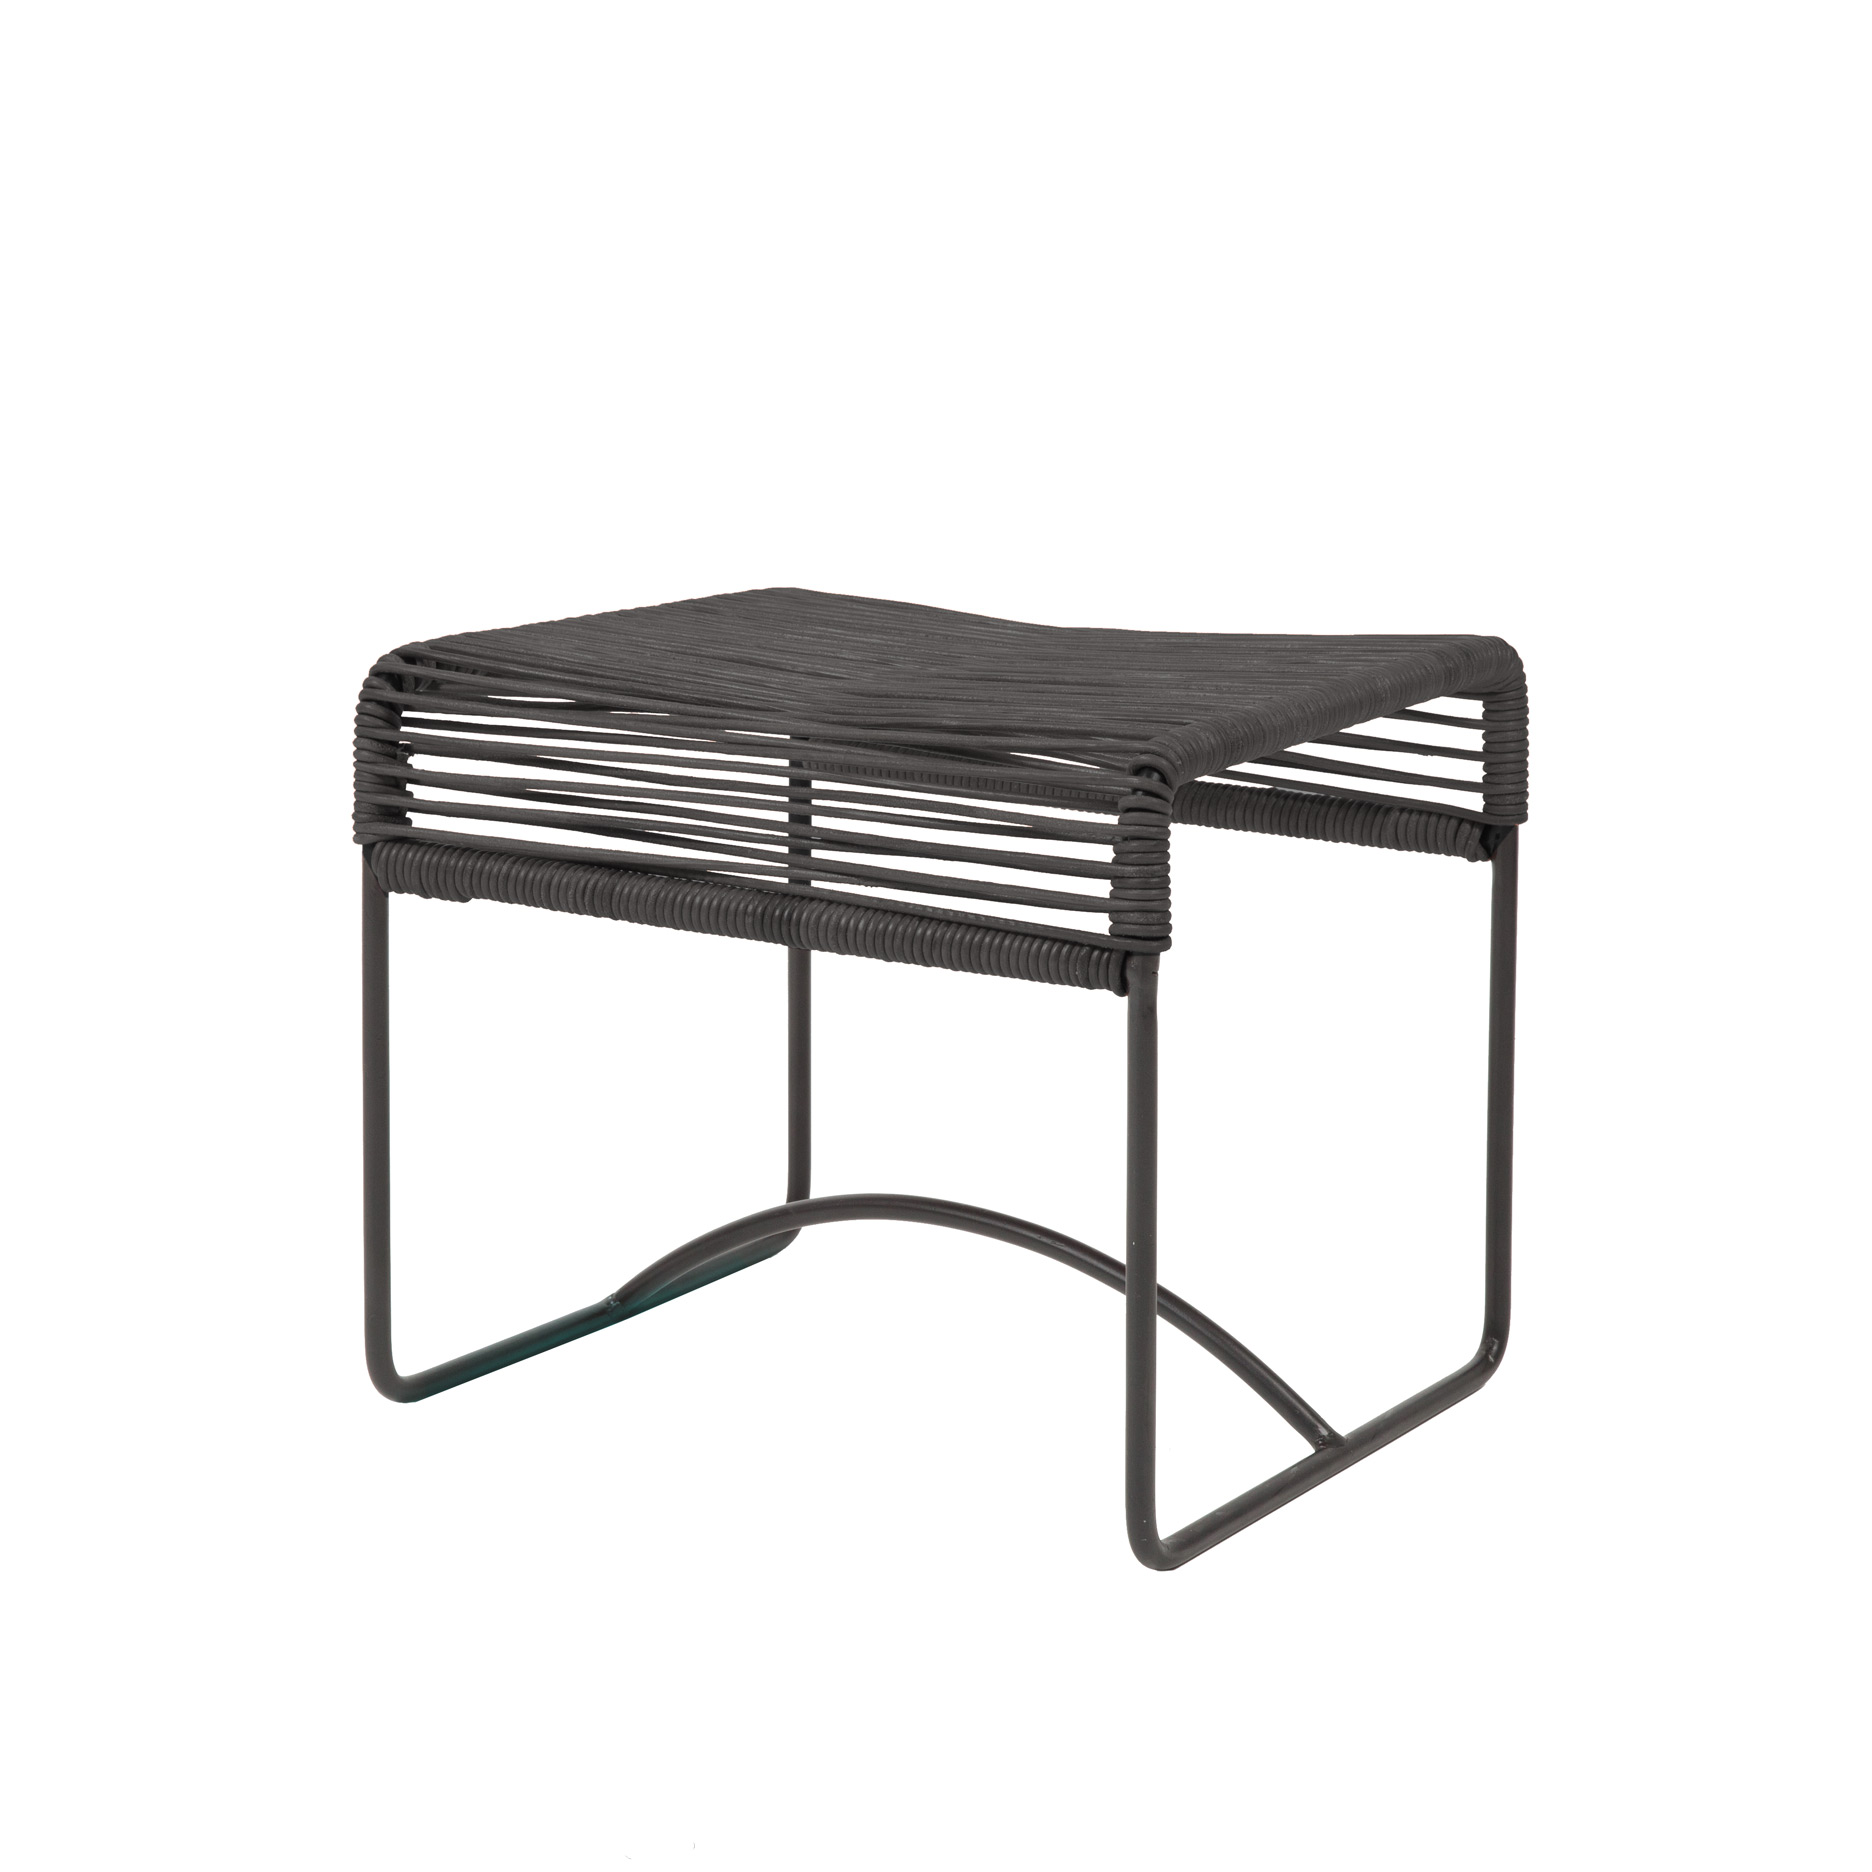 Hocker Leder Neu Original Acapulco Design Hocker Leder Negro